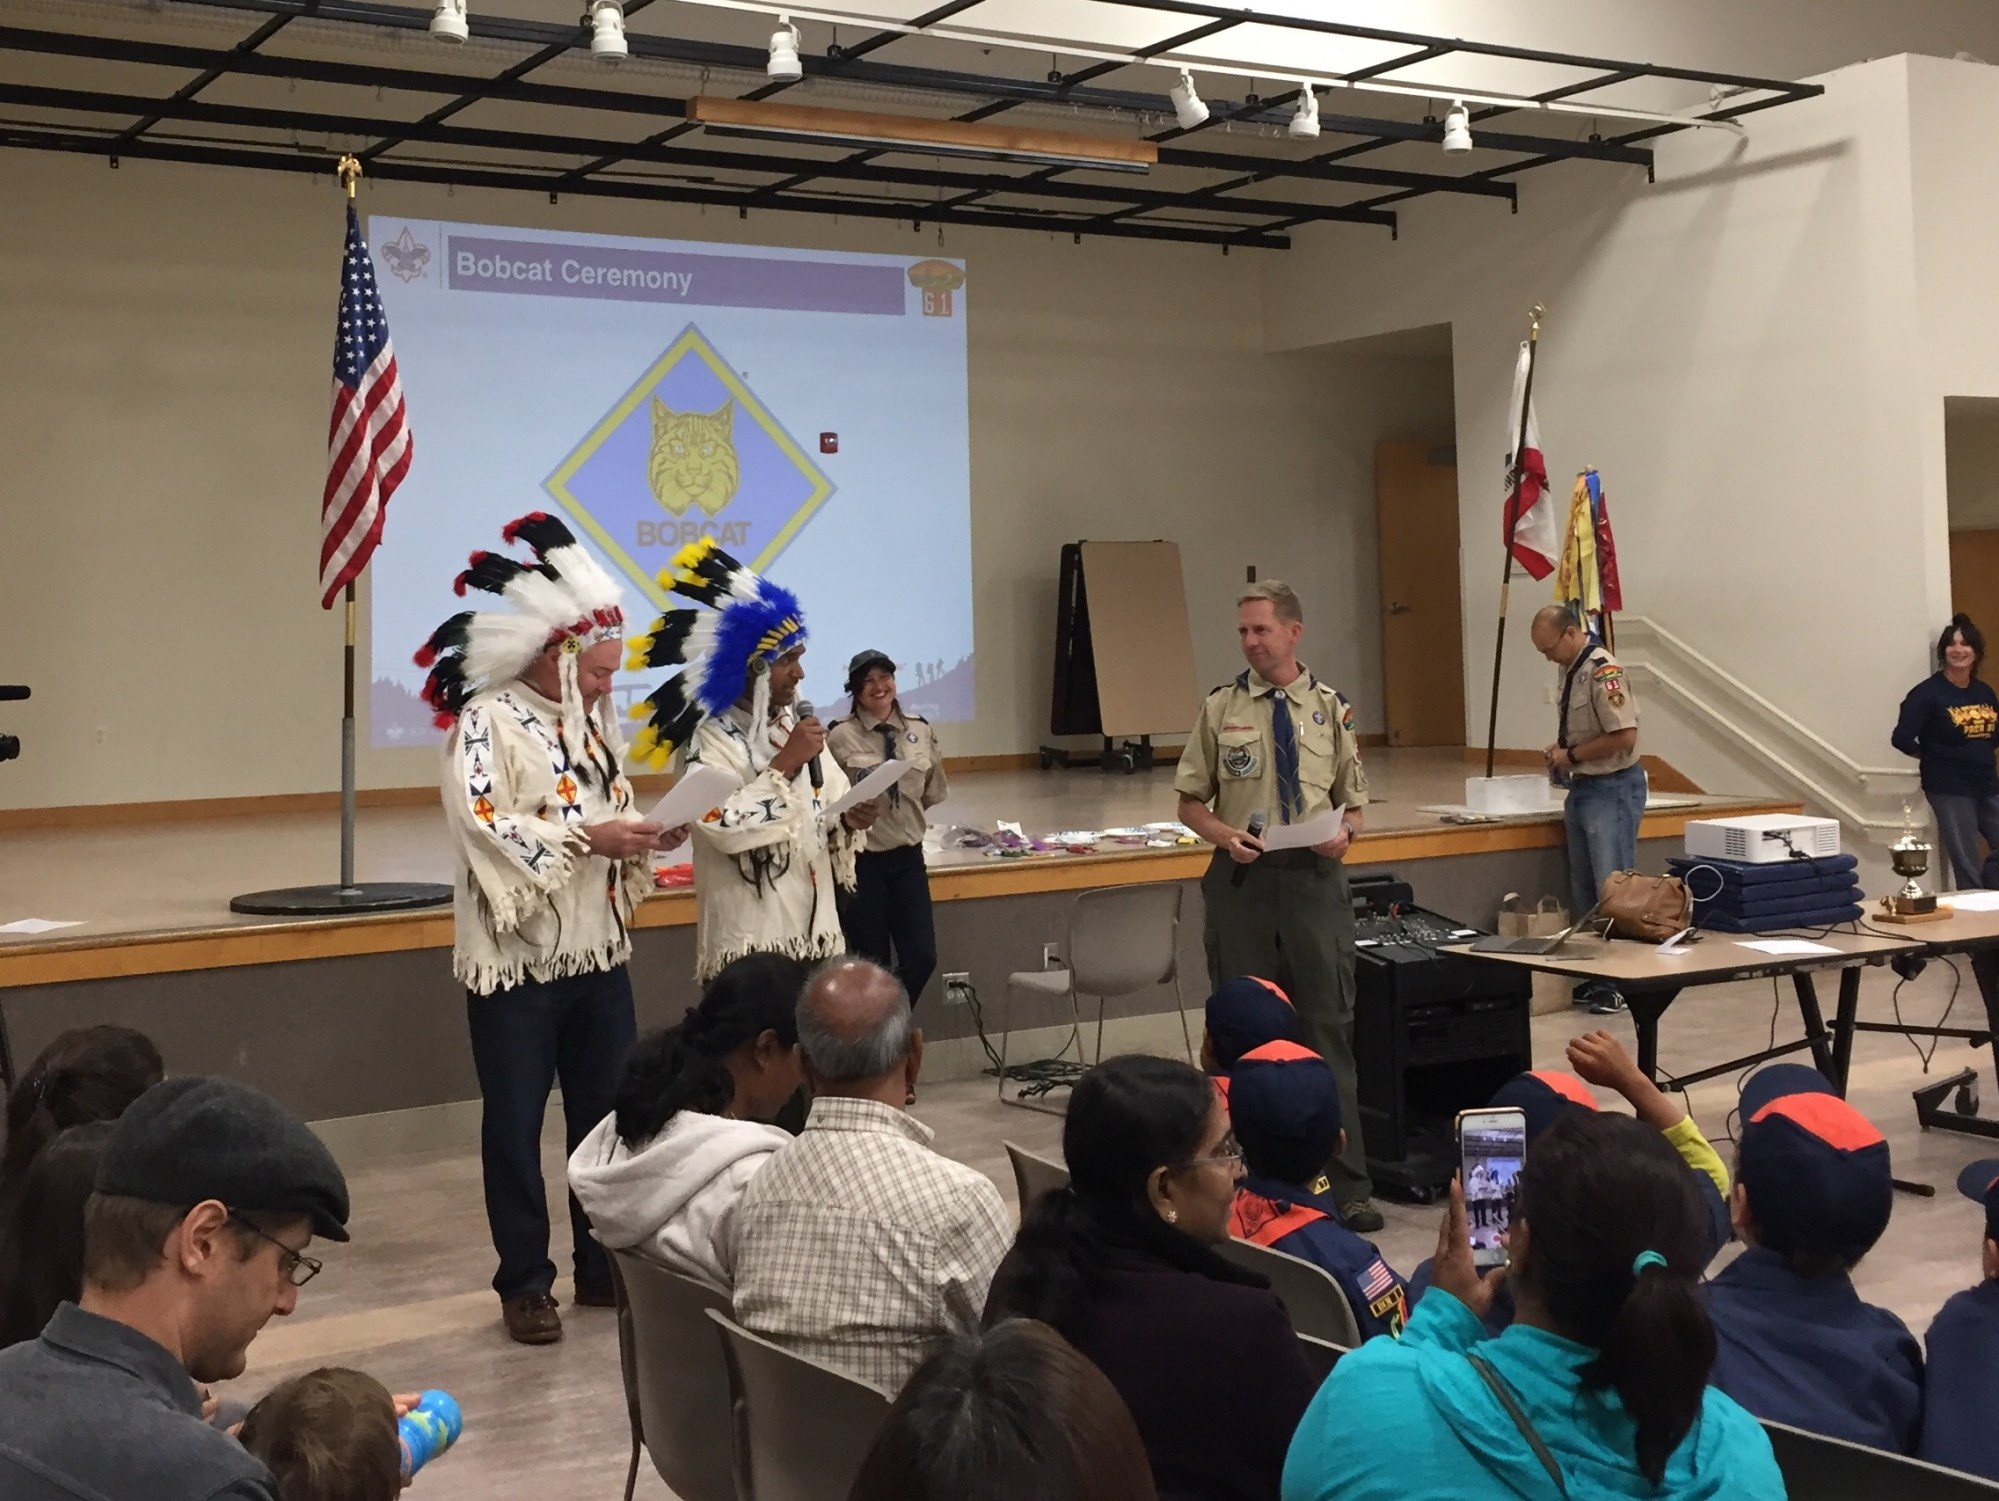 hight resolution of pack 61 presented bobcat awards to 35 new cub scouts in a special ceremony at our october pack meeting congratulations to all of our new bobcats